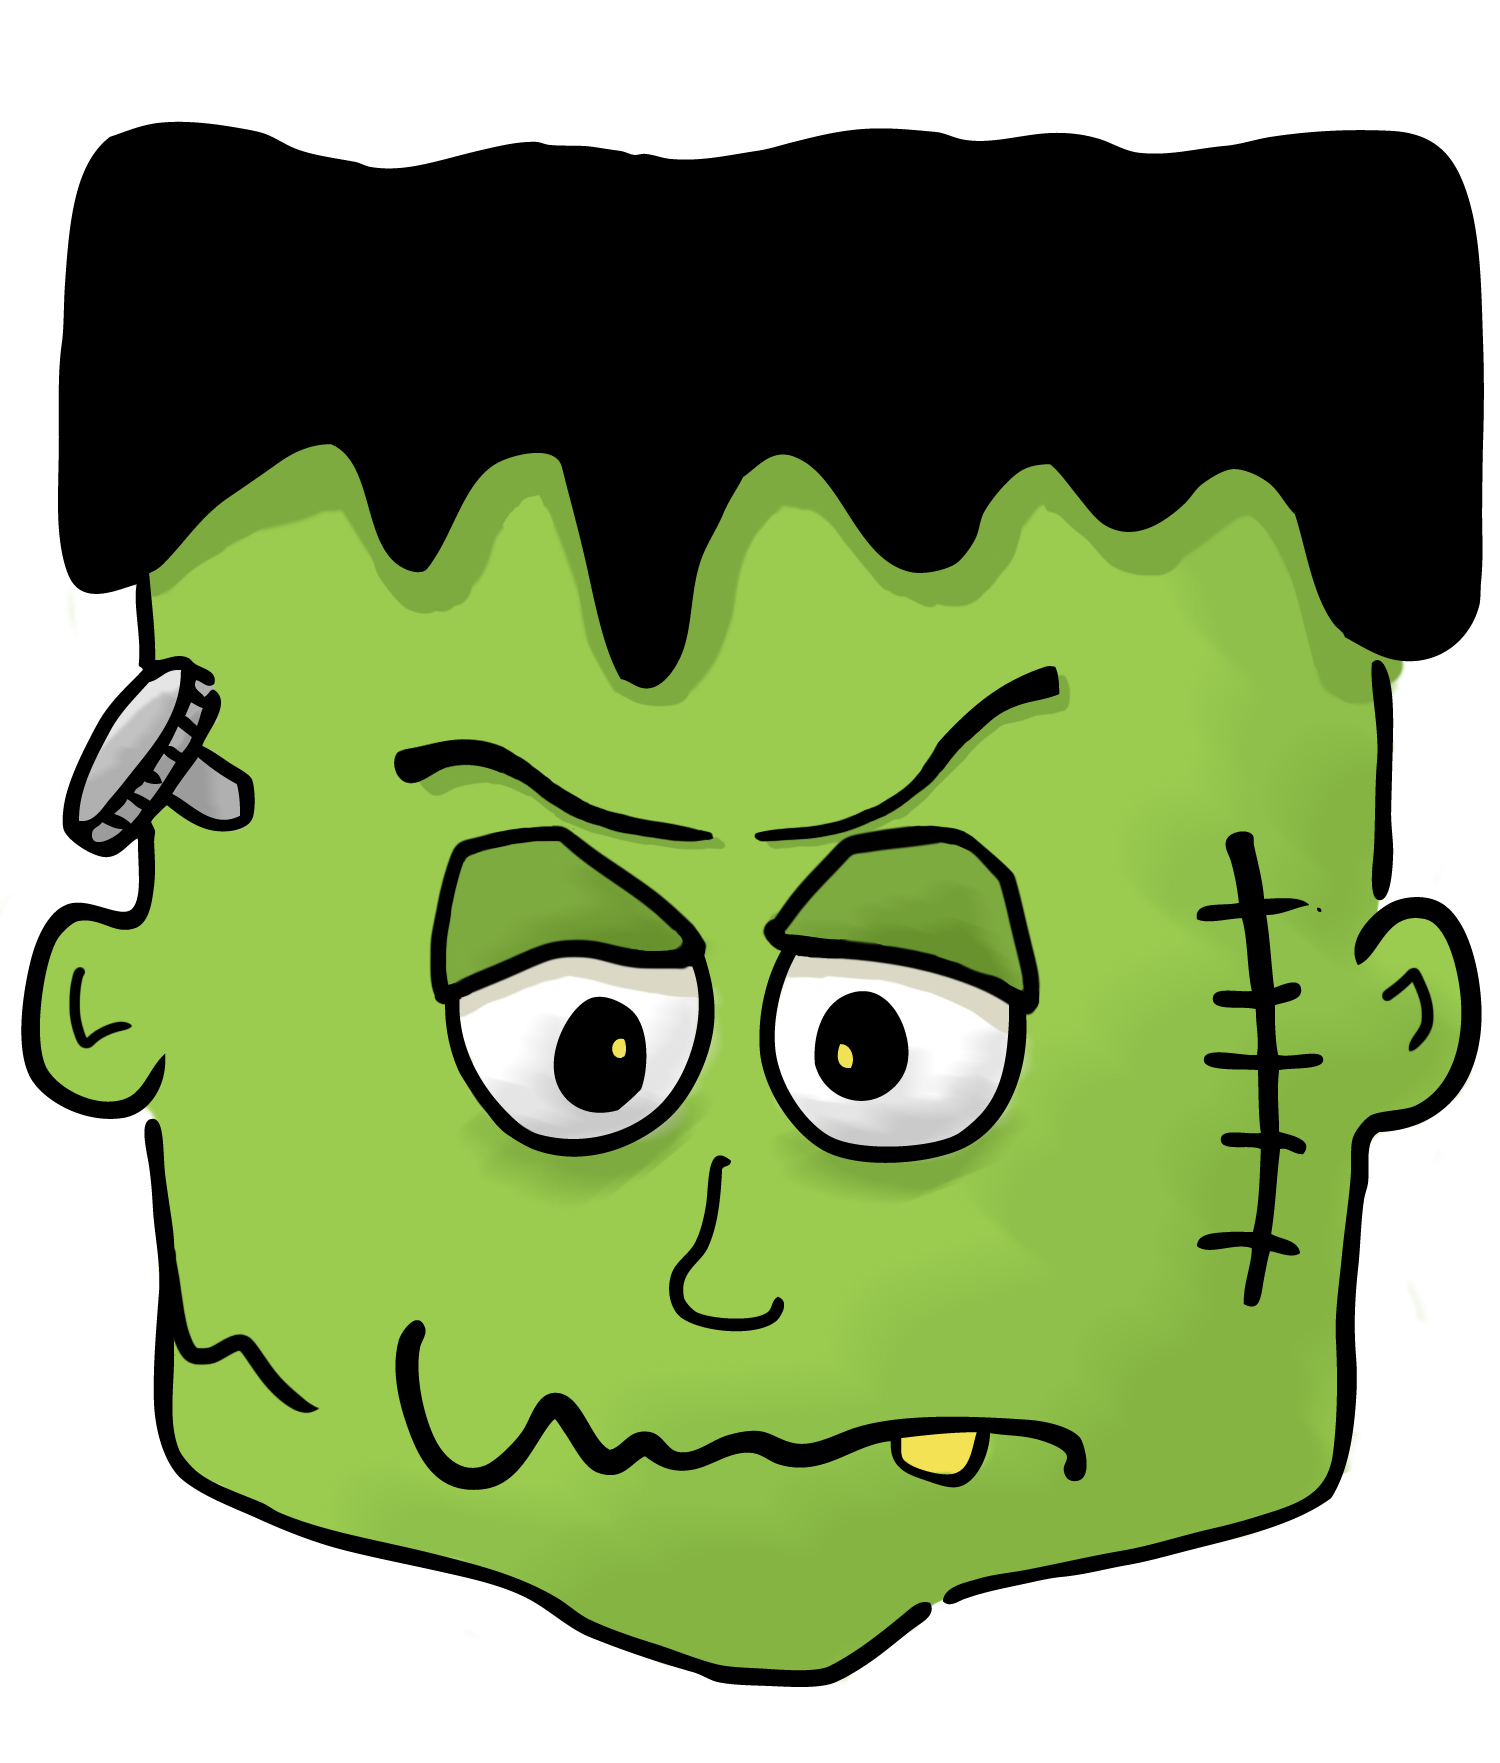 Stitches vector frankenstein. Halloween clipart kid